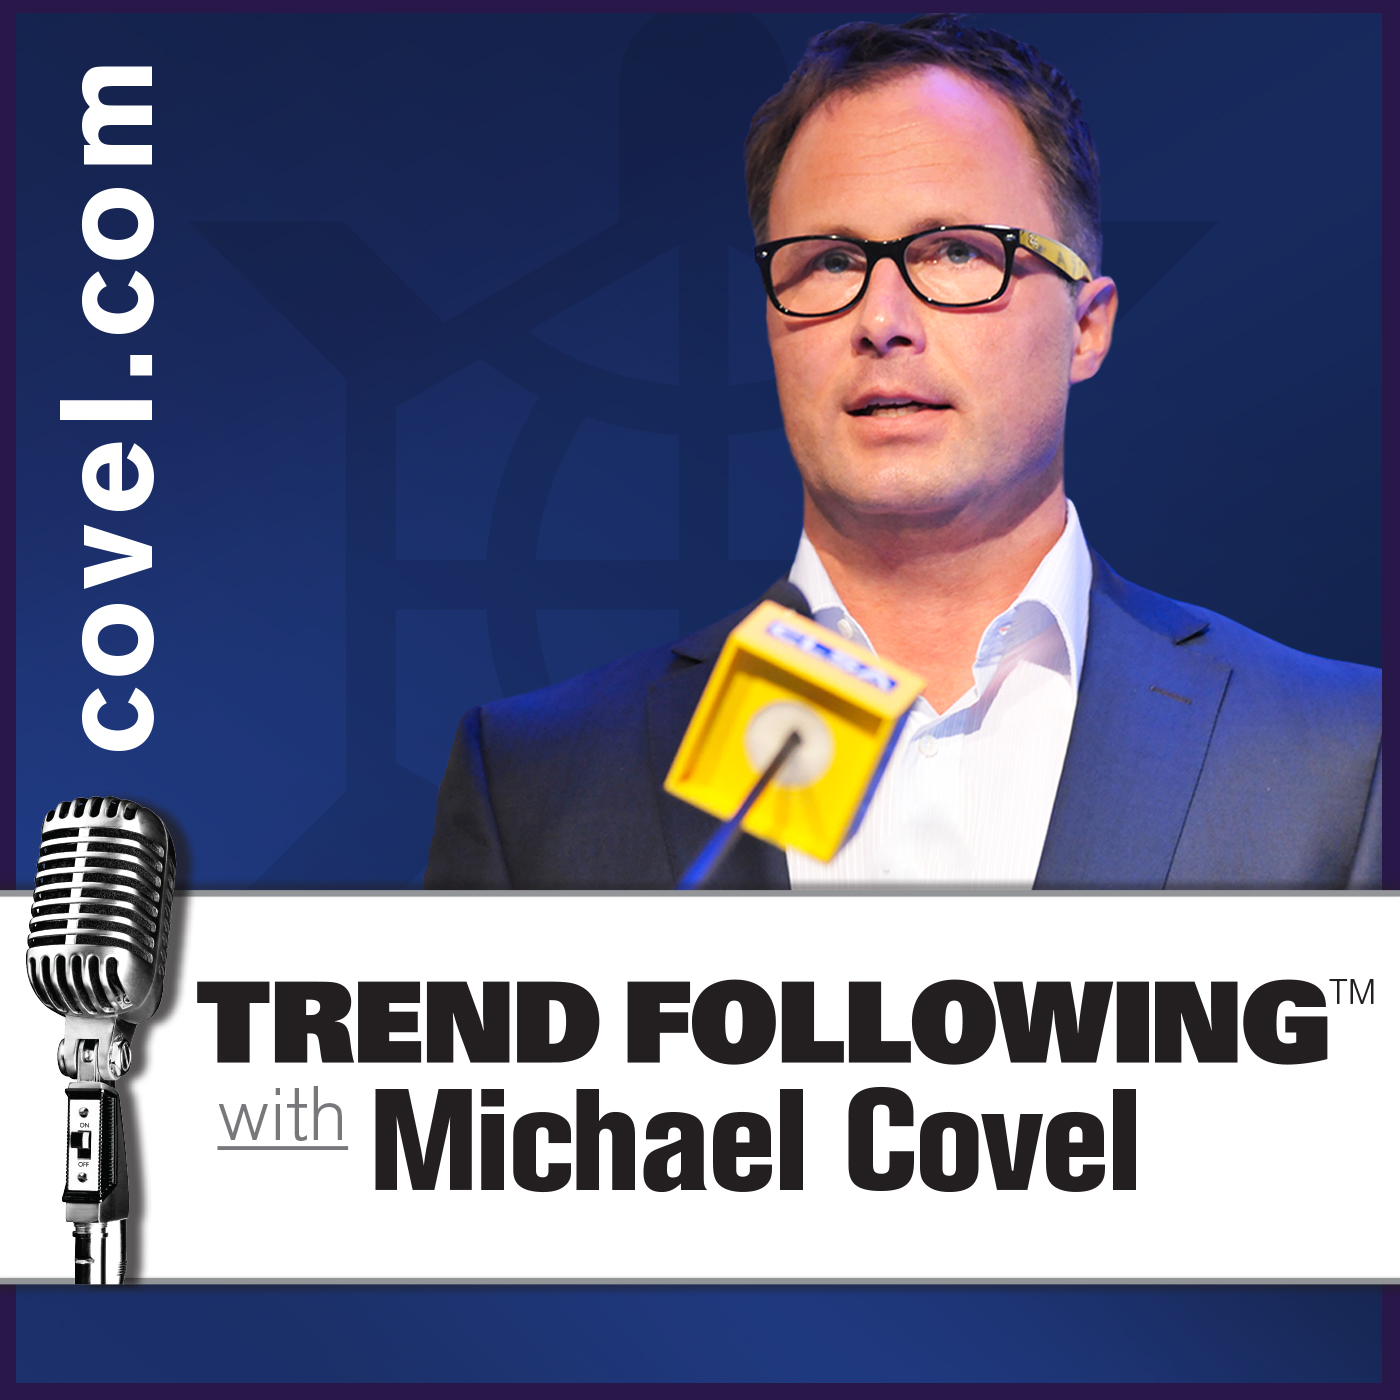 Ep. 471: Emma Seppala Interview with Michael Covel on Trend Following Radio